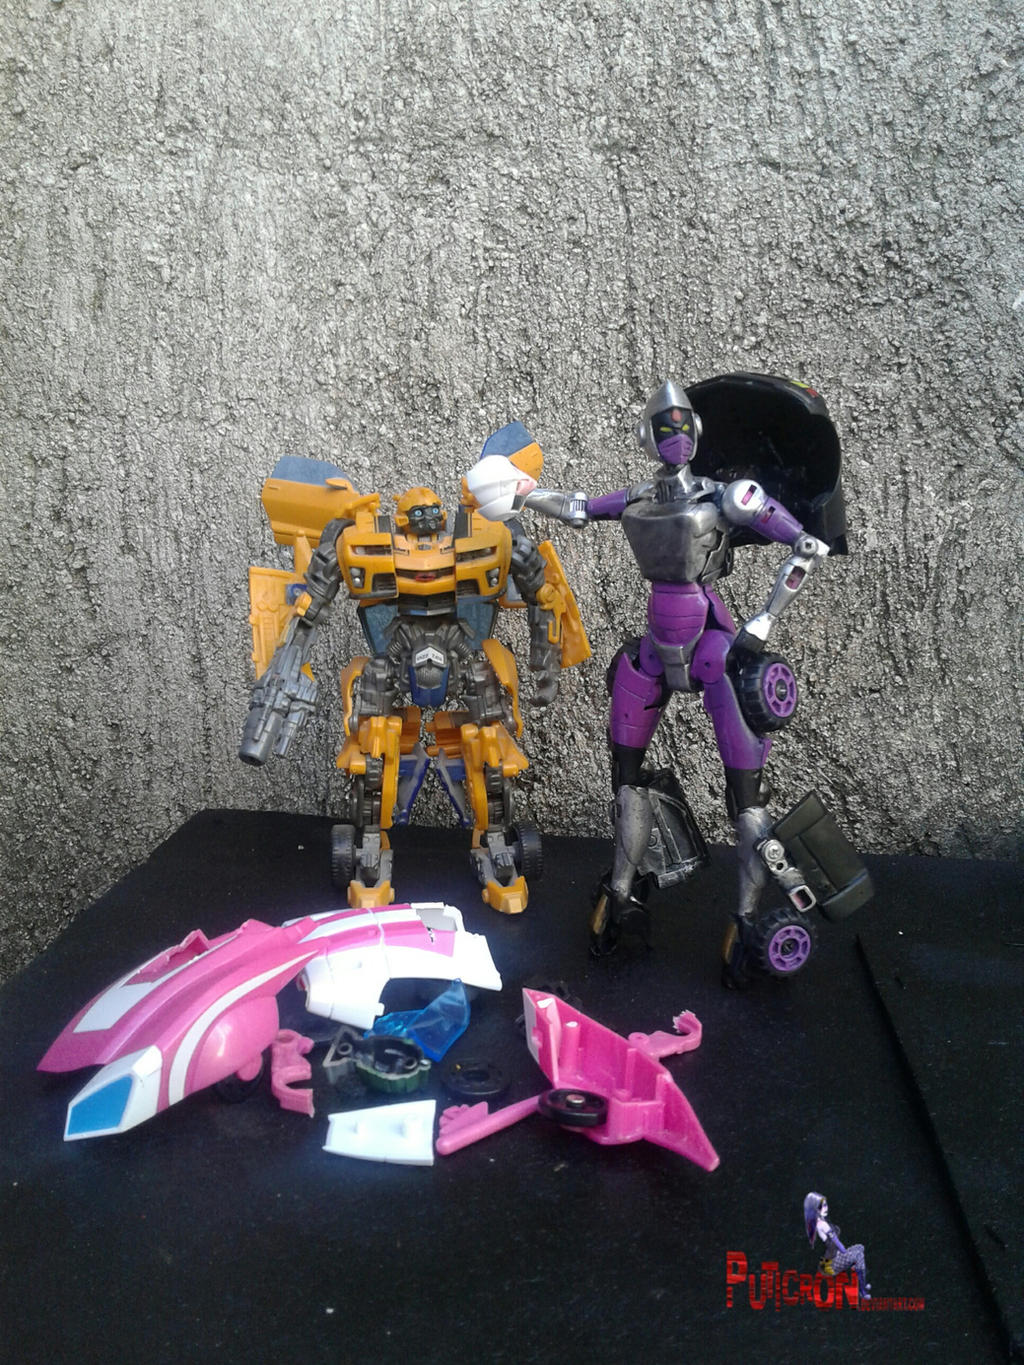 transformers custom nightbird by puticron